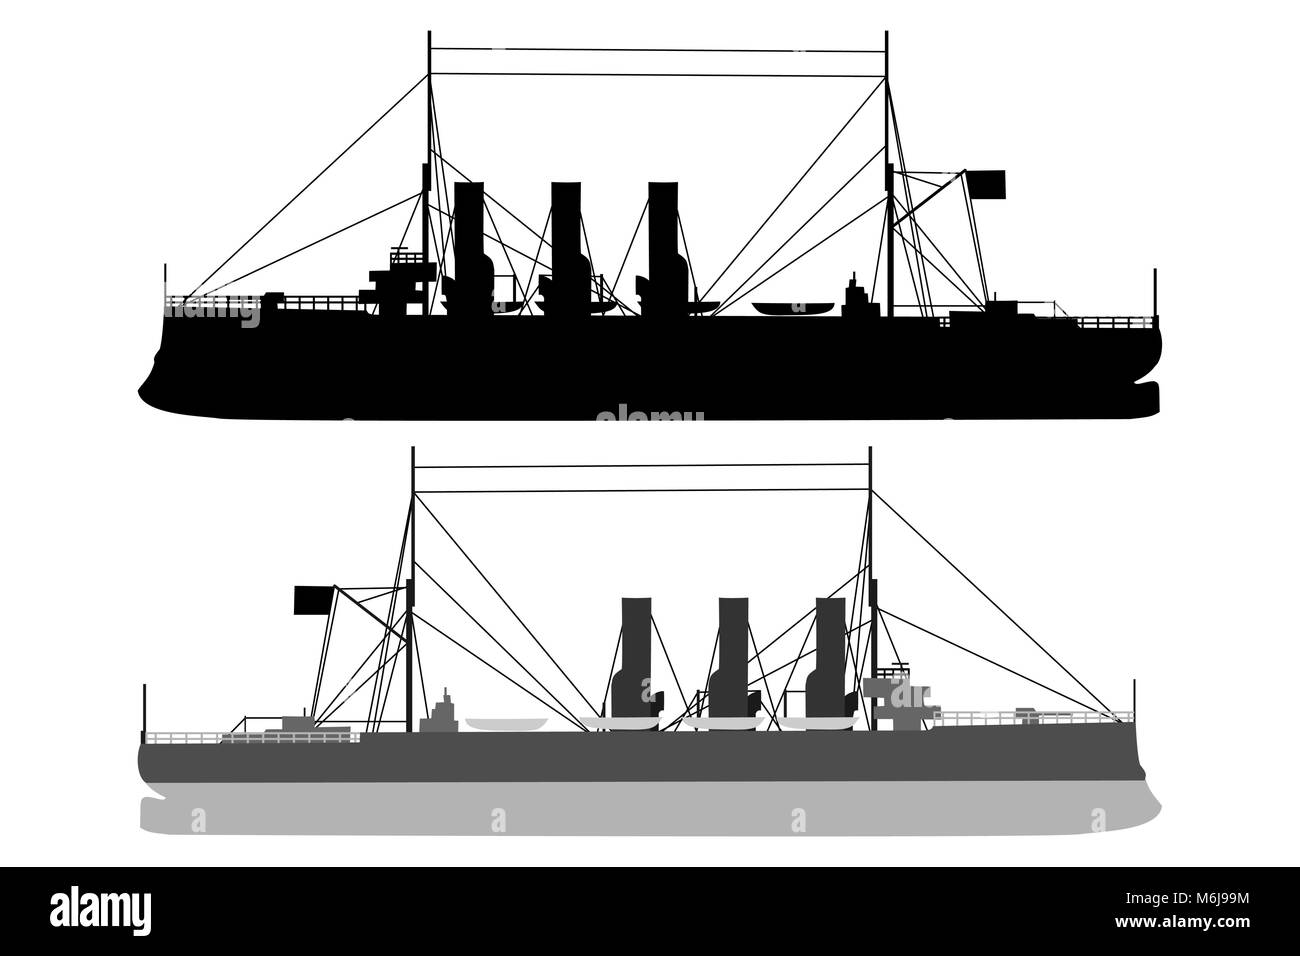 Silhouette  of a ship - vector illustration - black and white, Cruiser Aurora - Stock Image